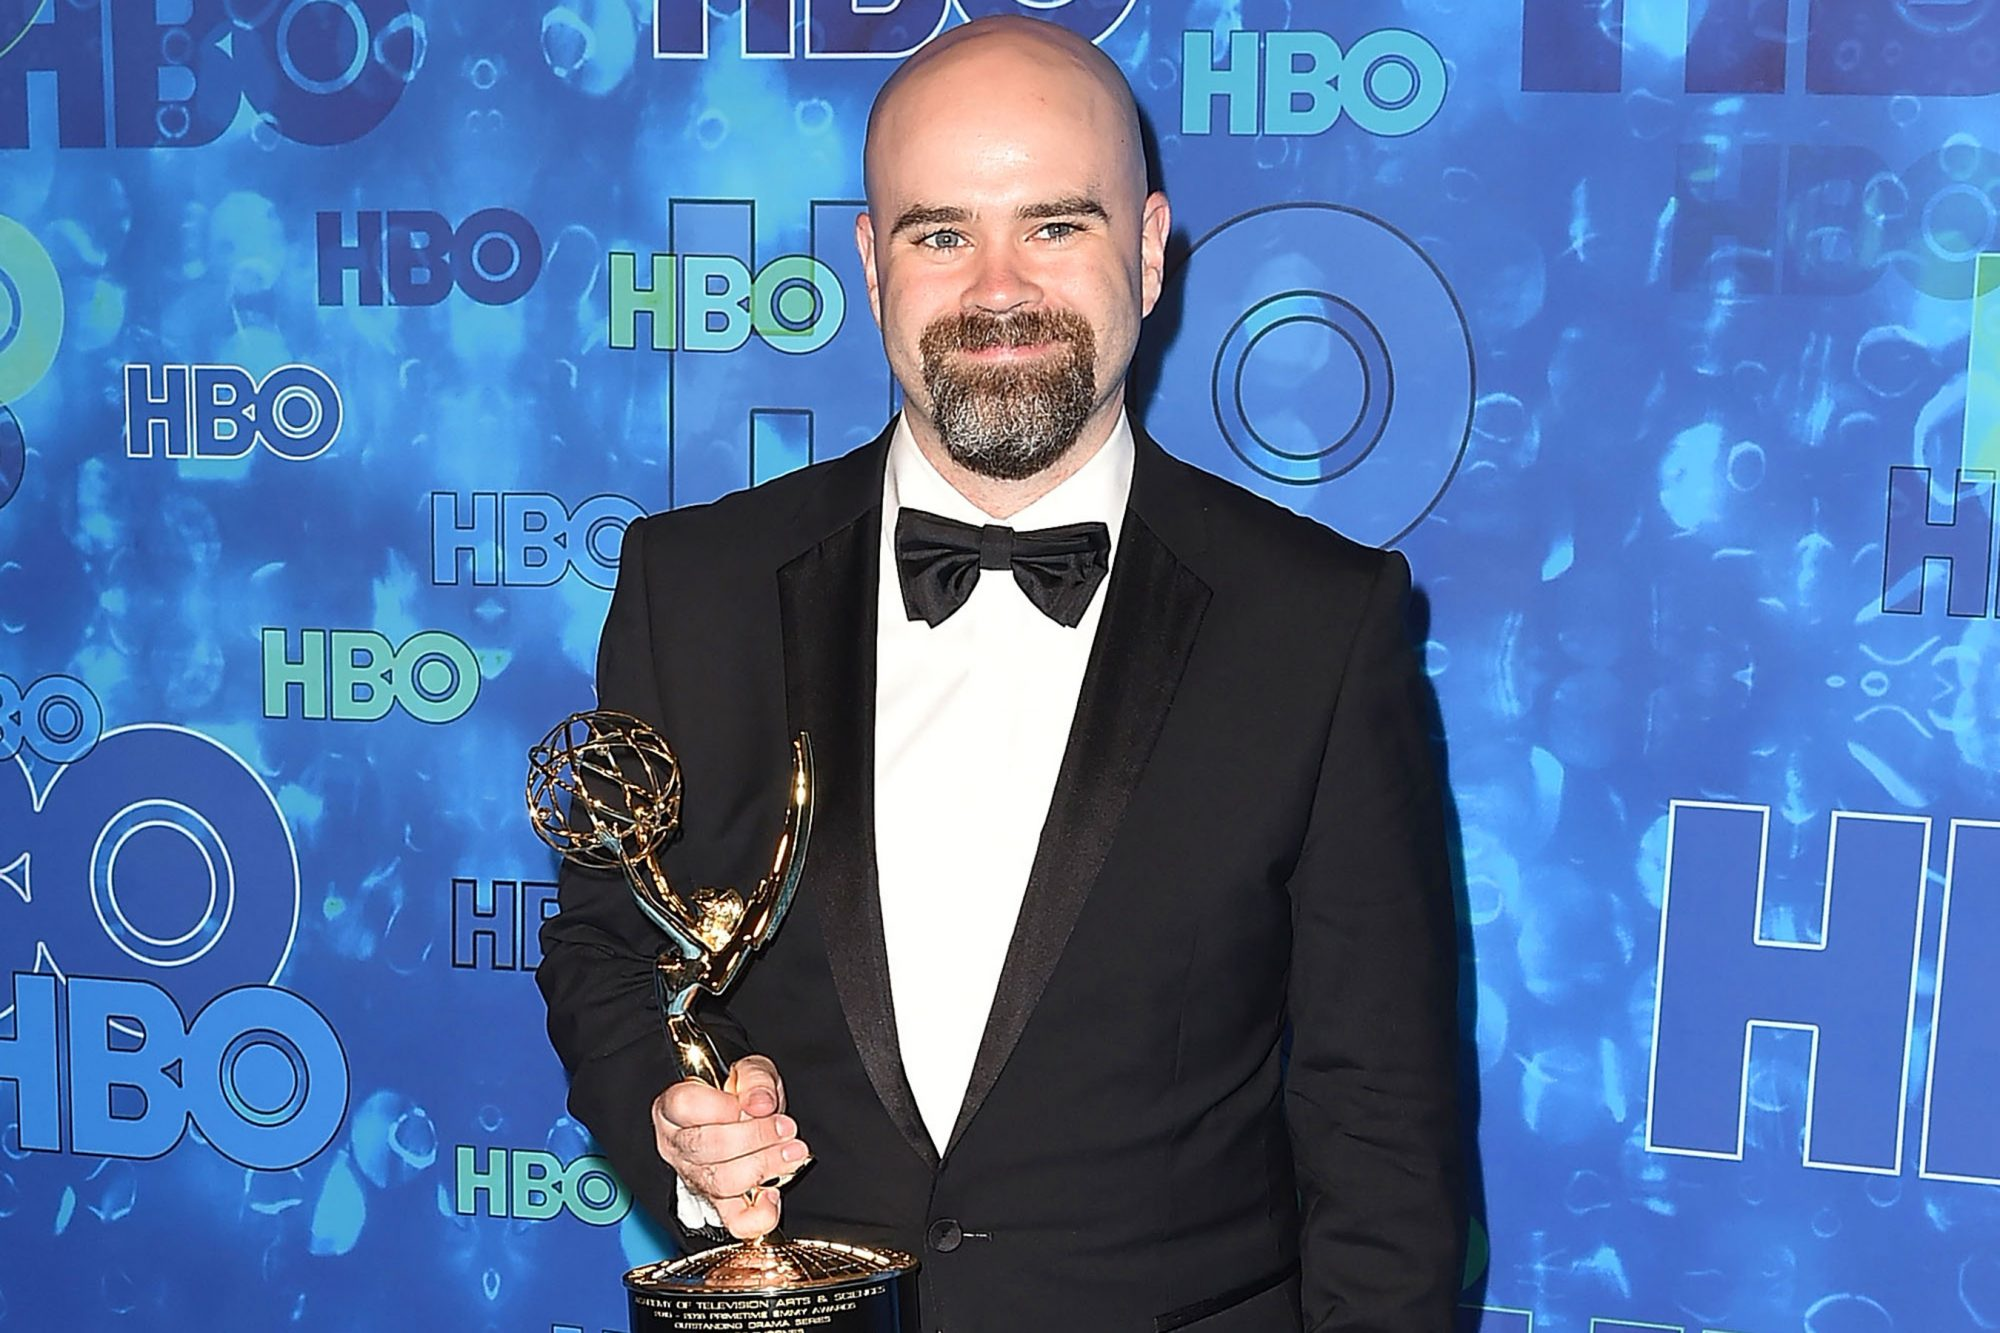 HBO's Post Award Reception Following the 68th Primetime Emmy Awards